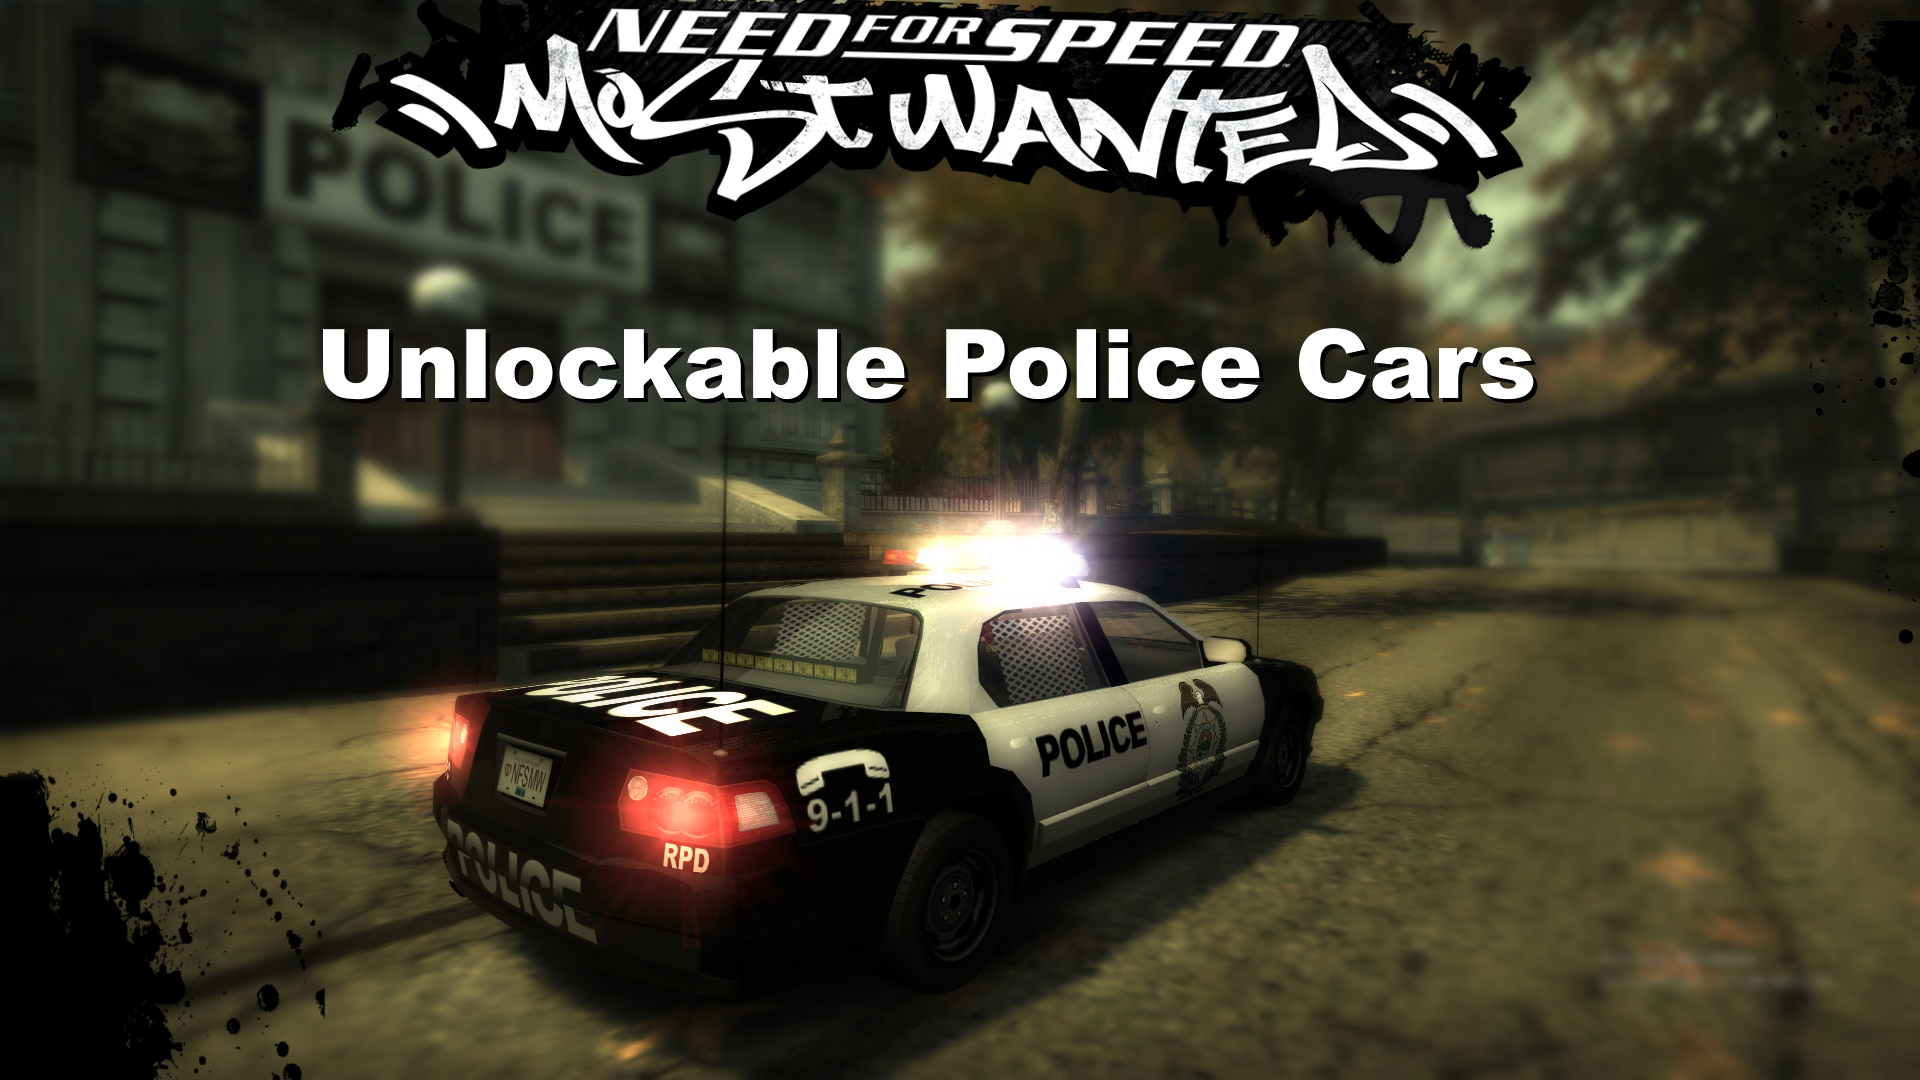 Nfsmods Need For Speed Most Wanted Unlockable Police Cars